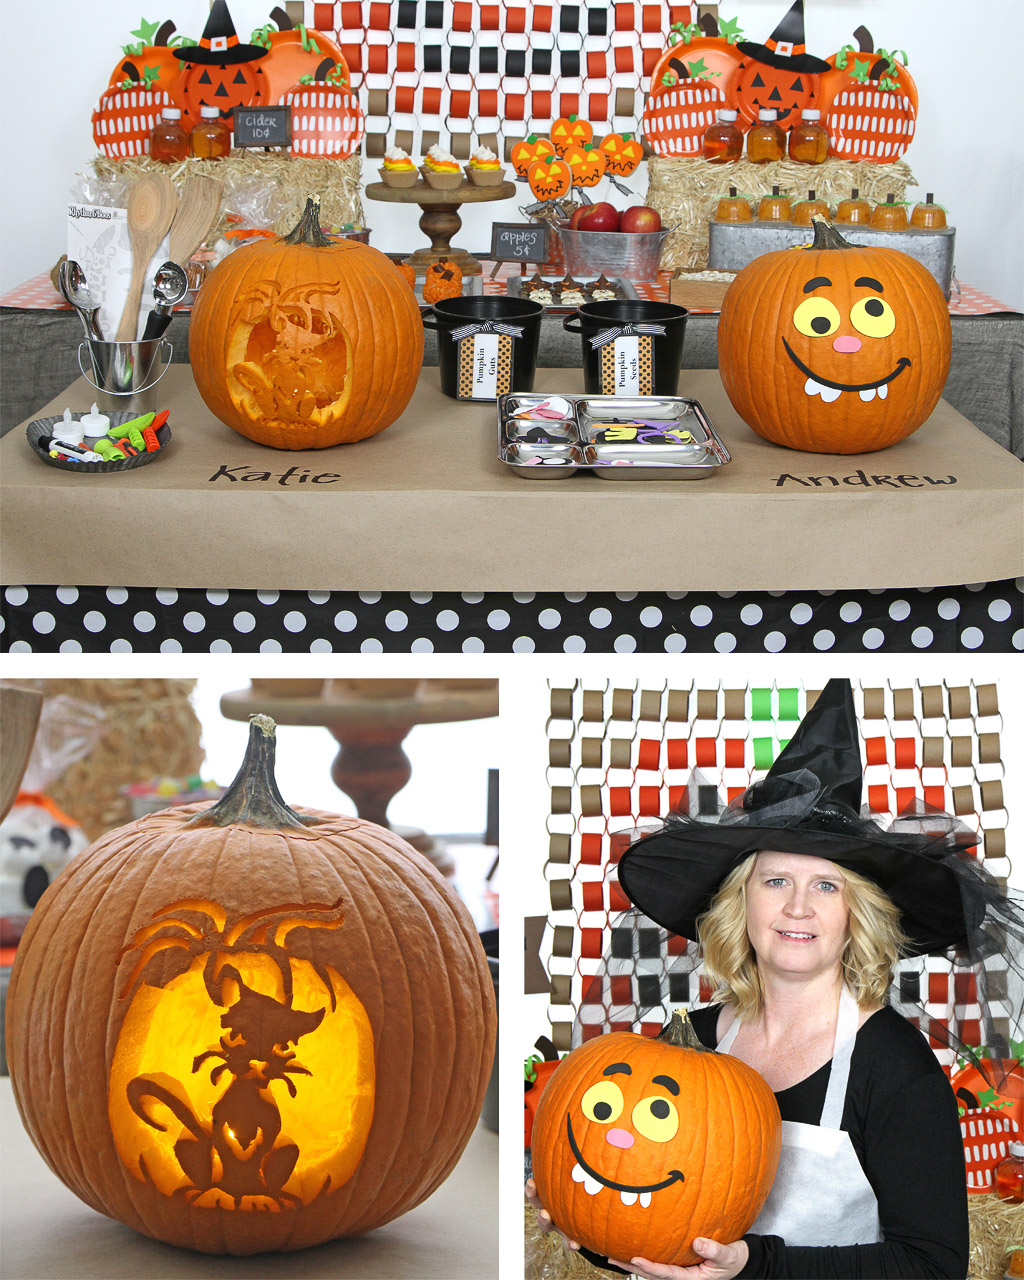 Halloween Pumpkin Carving Party Ideas